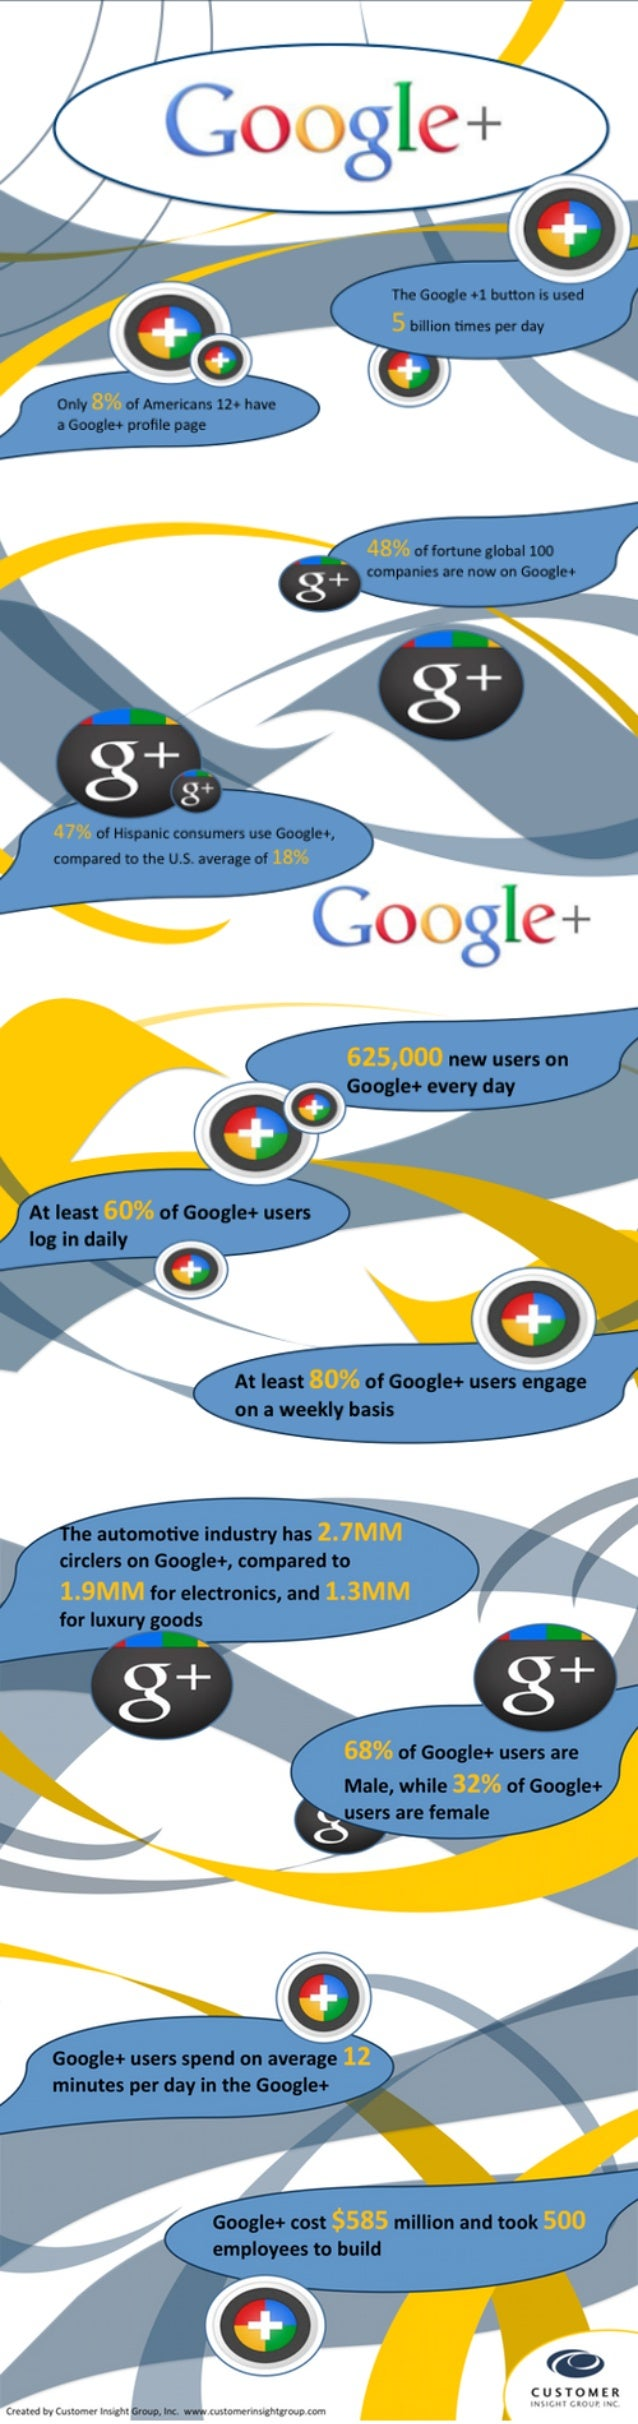 What Marketers Need to Know about Google+ (Infographic)